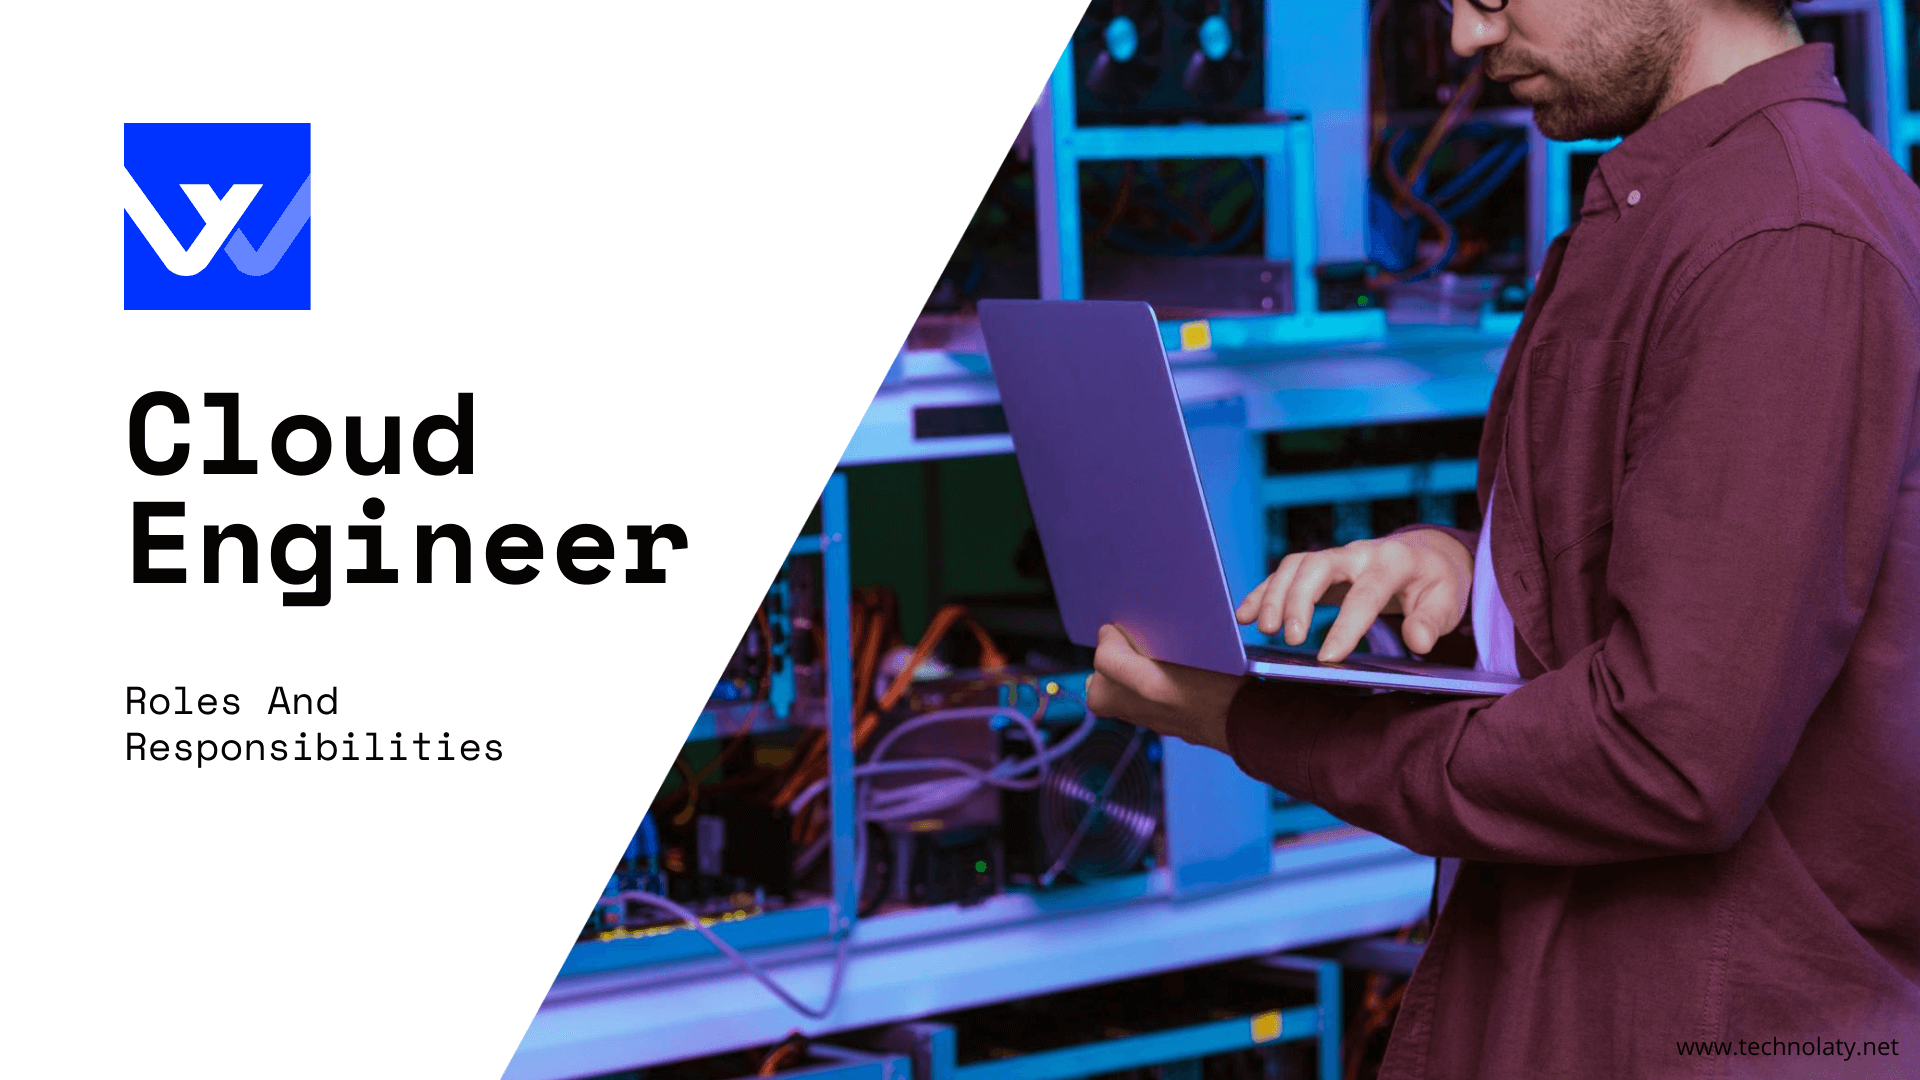 Cloud Engineer: Roles And Responsibilities